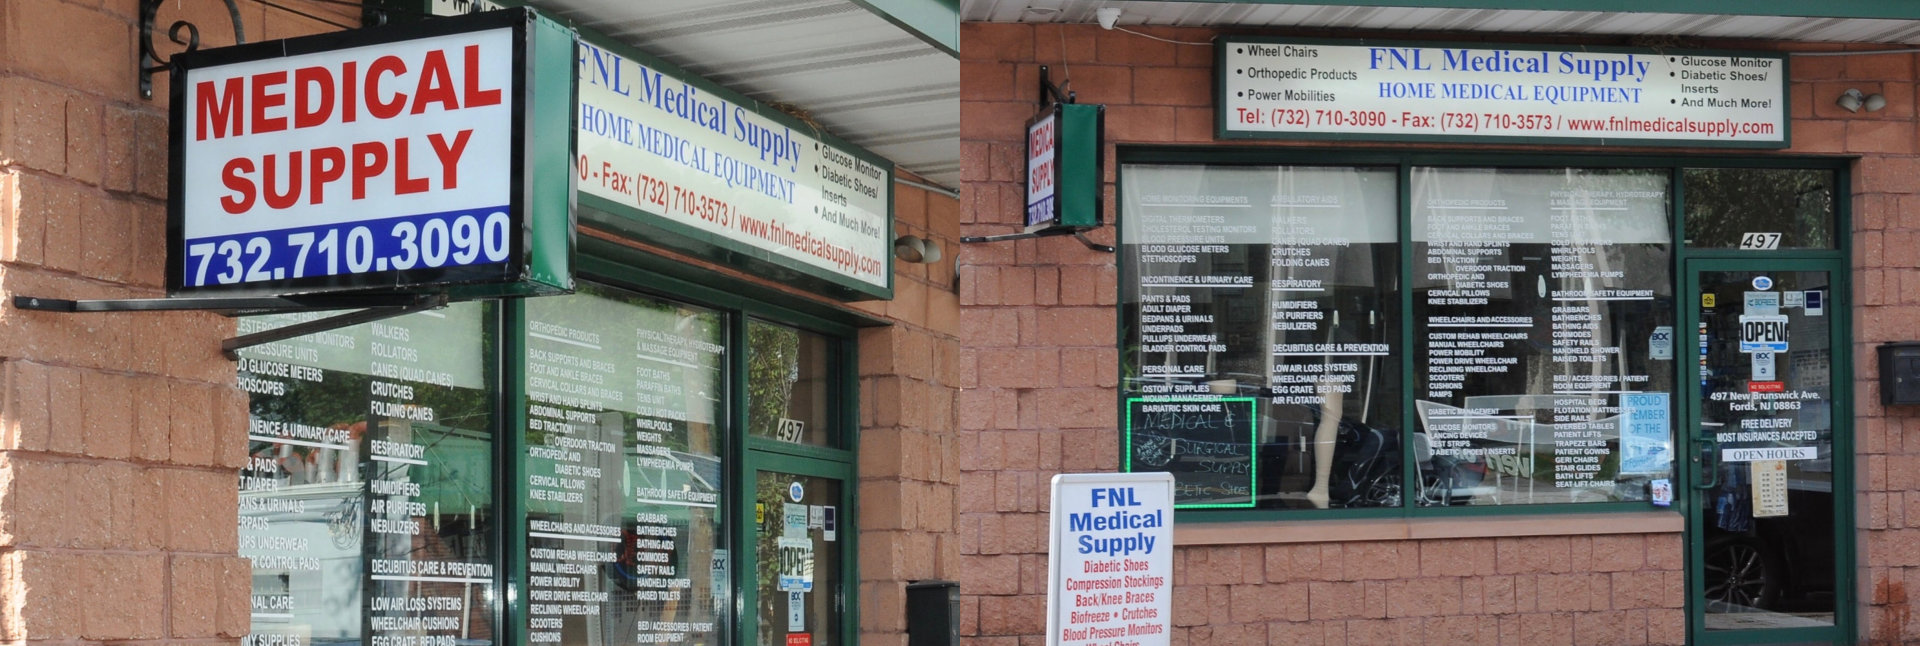 FNL Medical Supply store